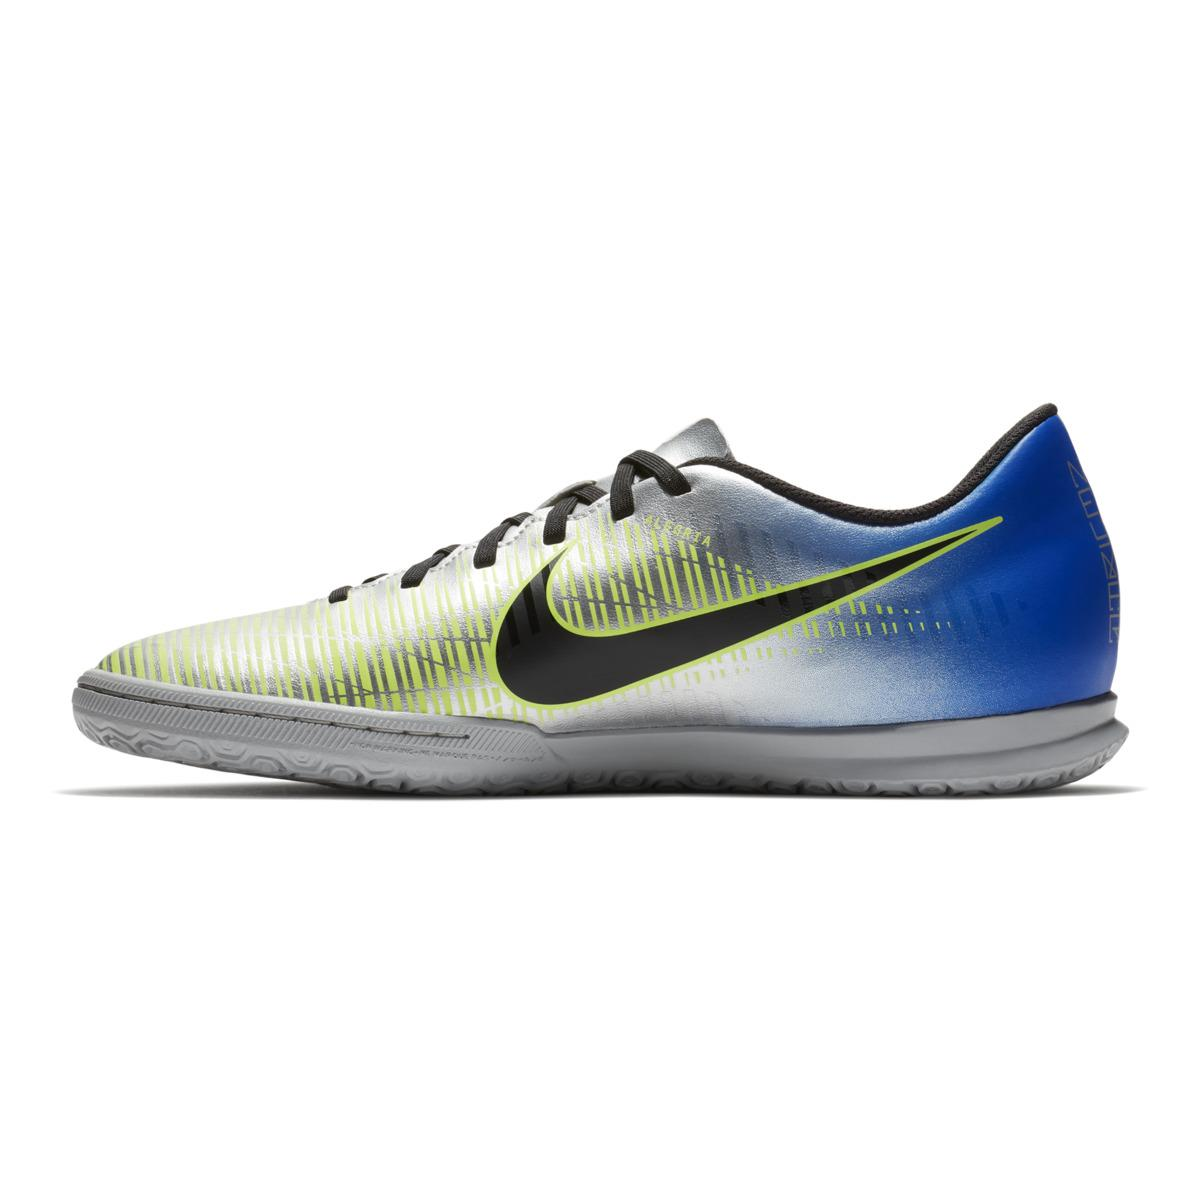 c15c5781ffb0e nike -Blue-Silver-Neymar-Jr-Indoor-Football-Boots-Mercurialx-Vortex-Iii-ic.jpeg